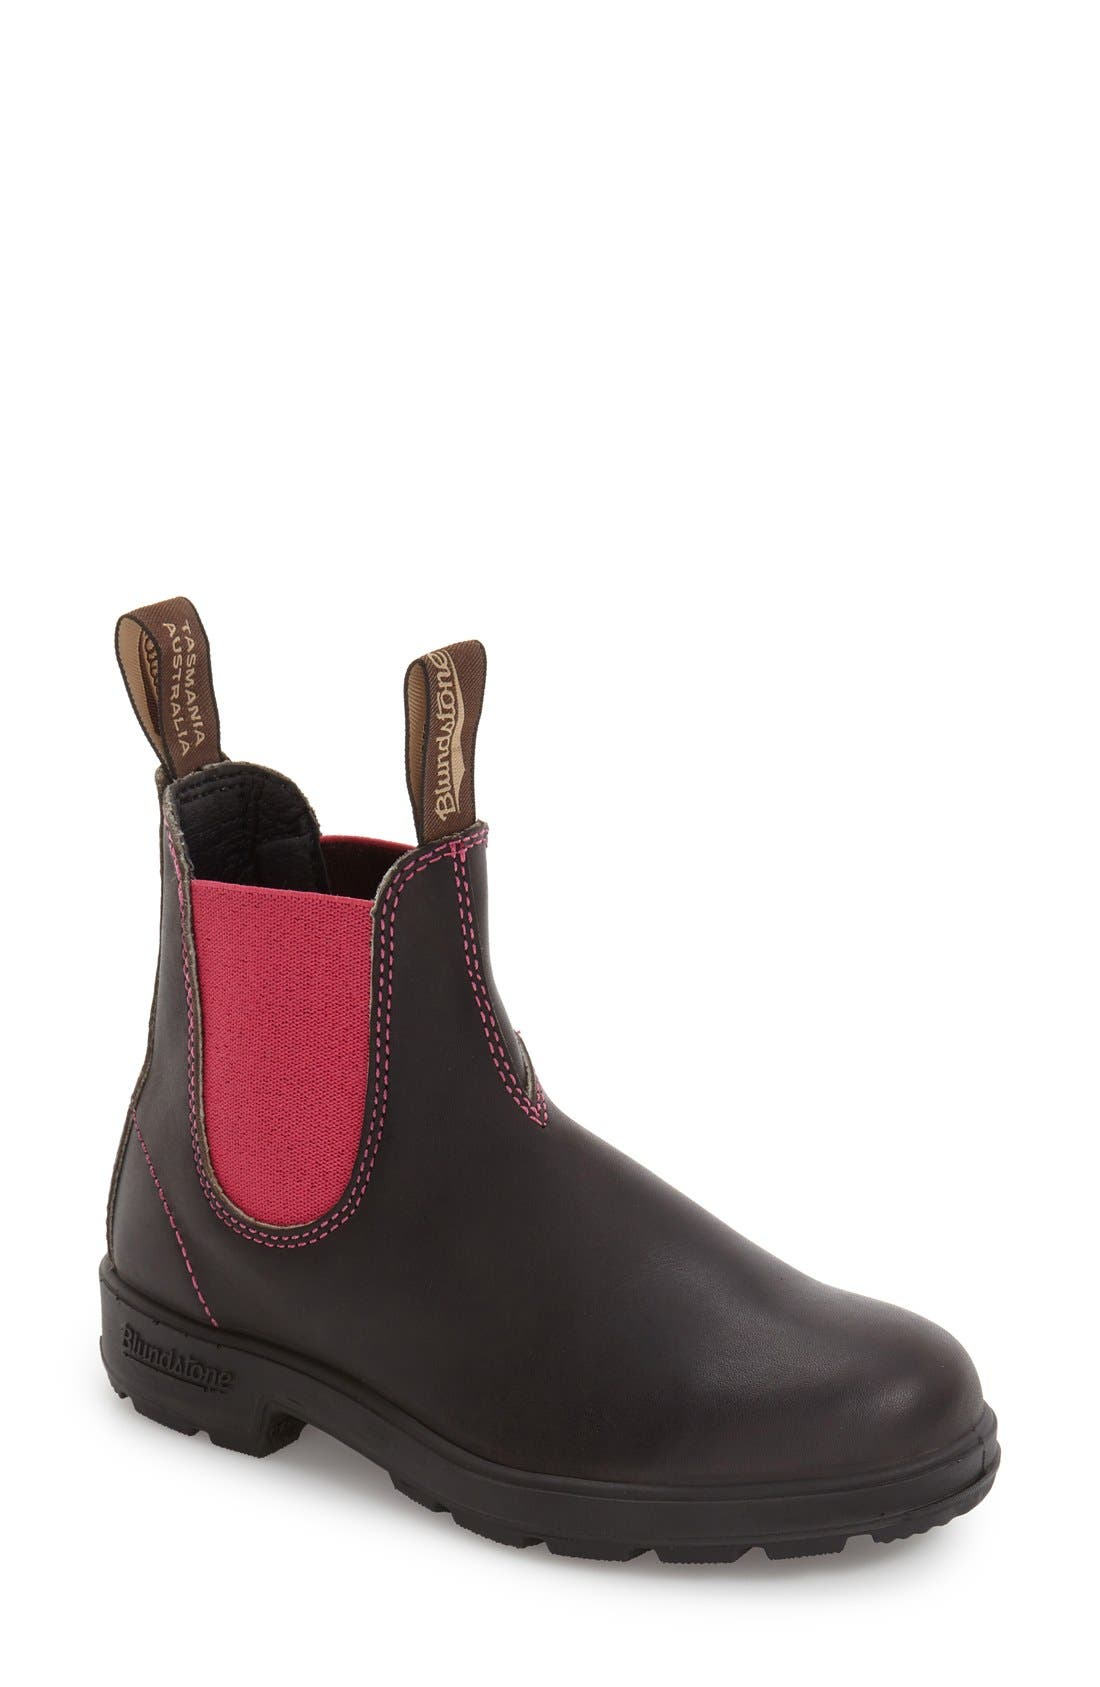 Footwear 'Original - 500 Series' Water Resistant Chelsea Boot,                         Main,                         color, Stout Brown/ Pink Leather